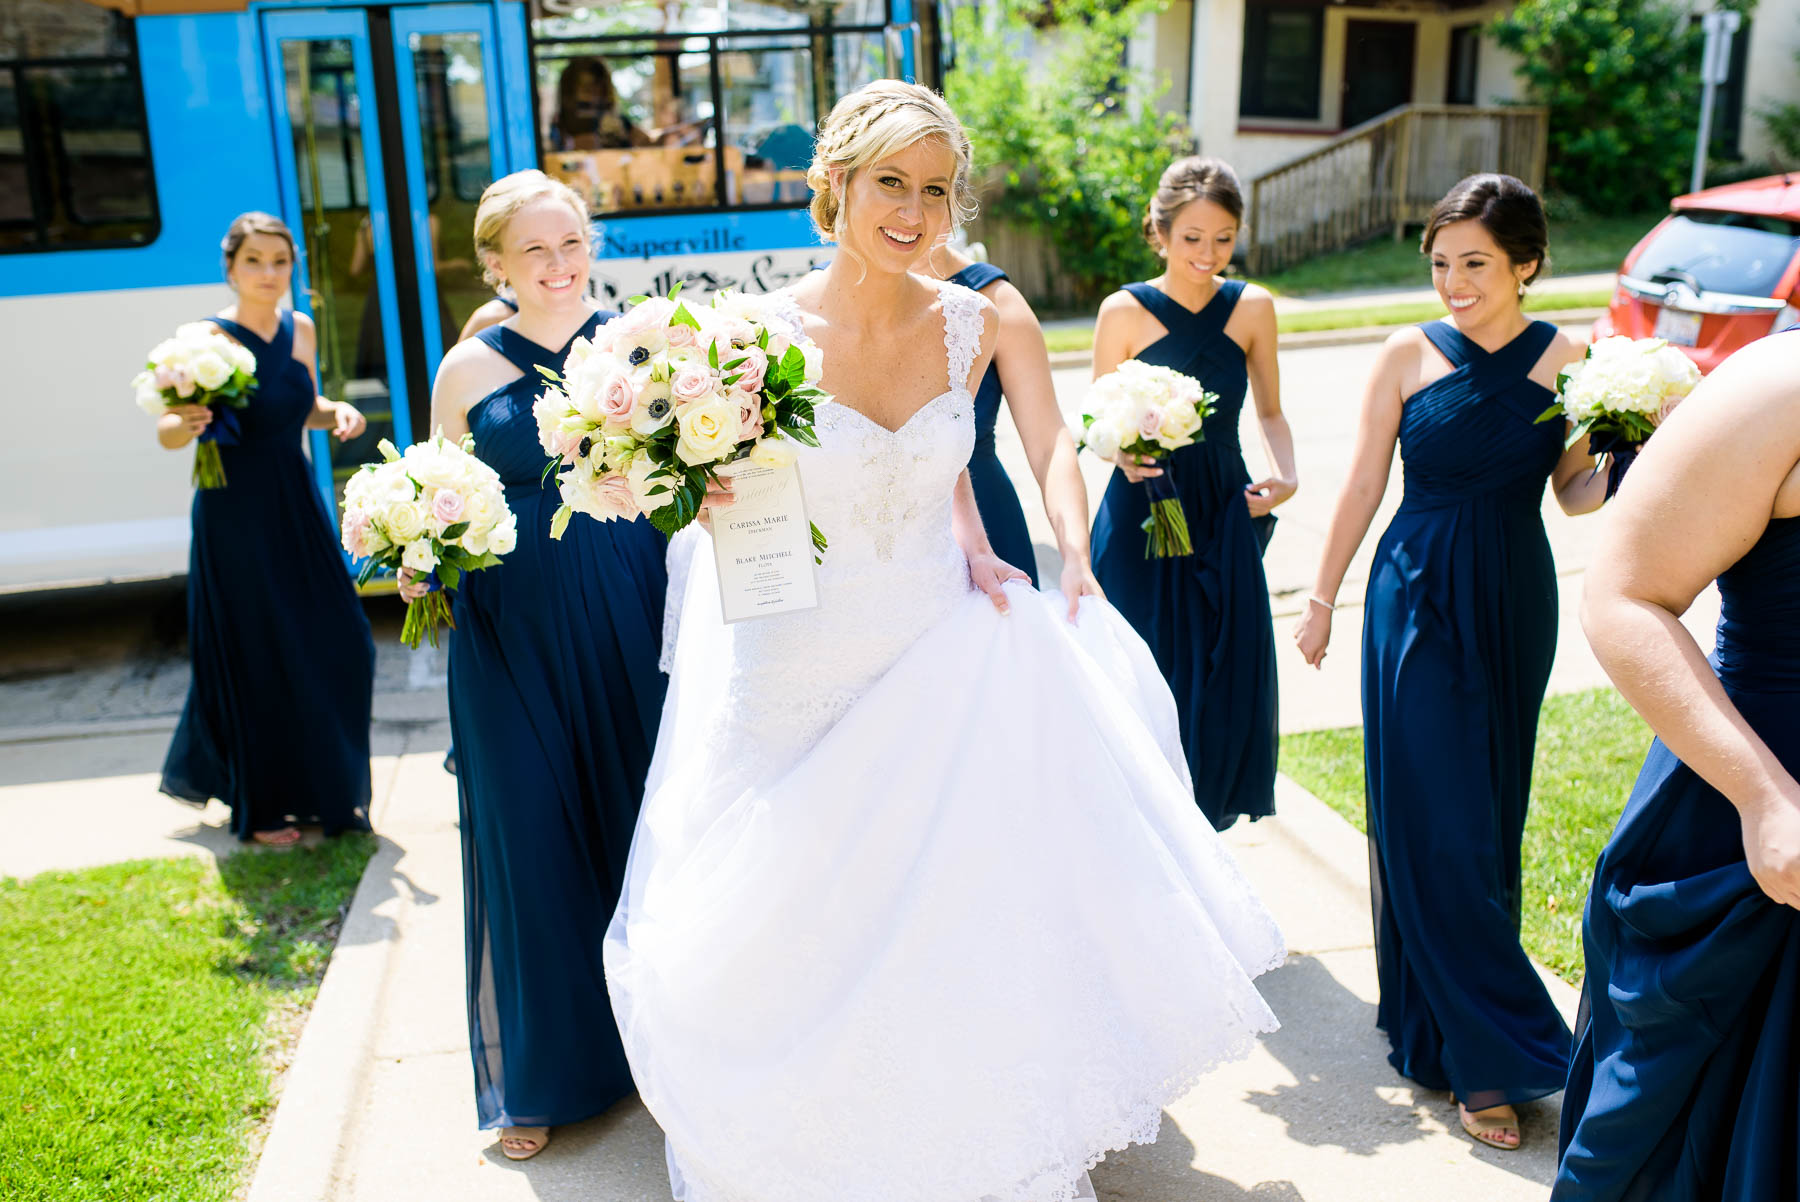 Bride and bridesmaid arrives for her wedding ceremony at Baker Memorial United Methodist Church.